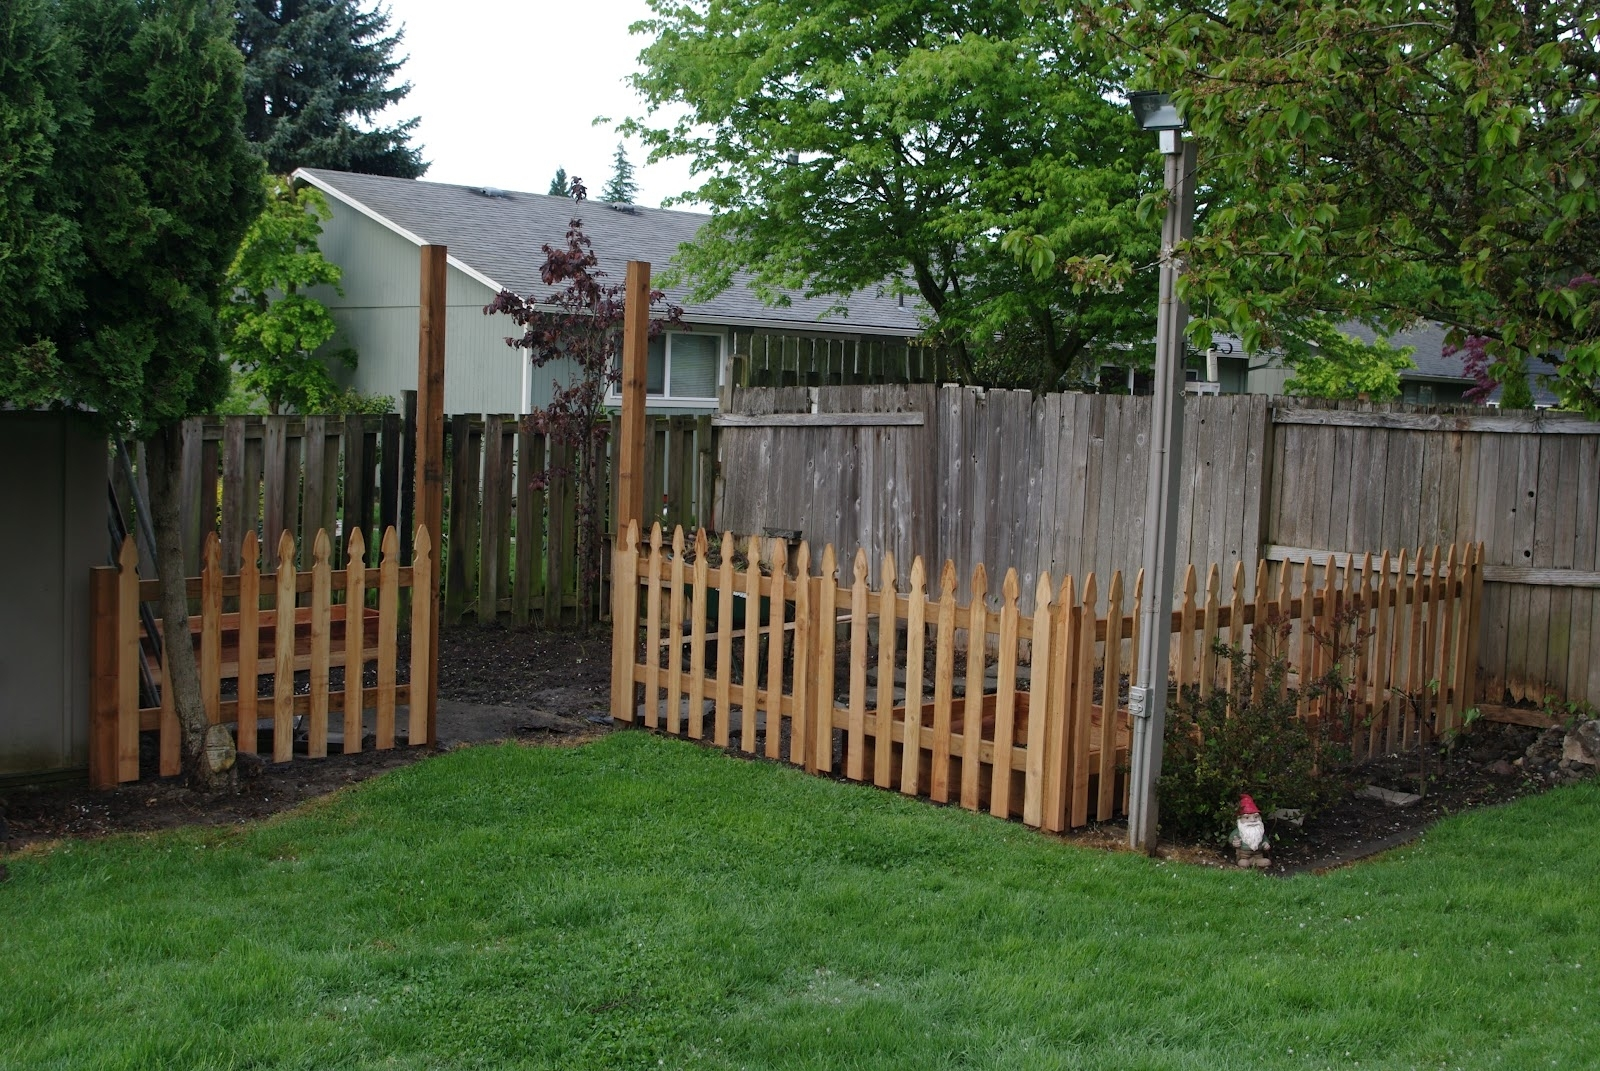 Homelifescience: Backyard Garden Fence-In Progress regarding Backyard Garden With Fence